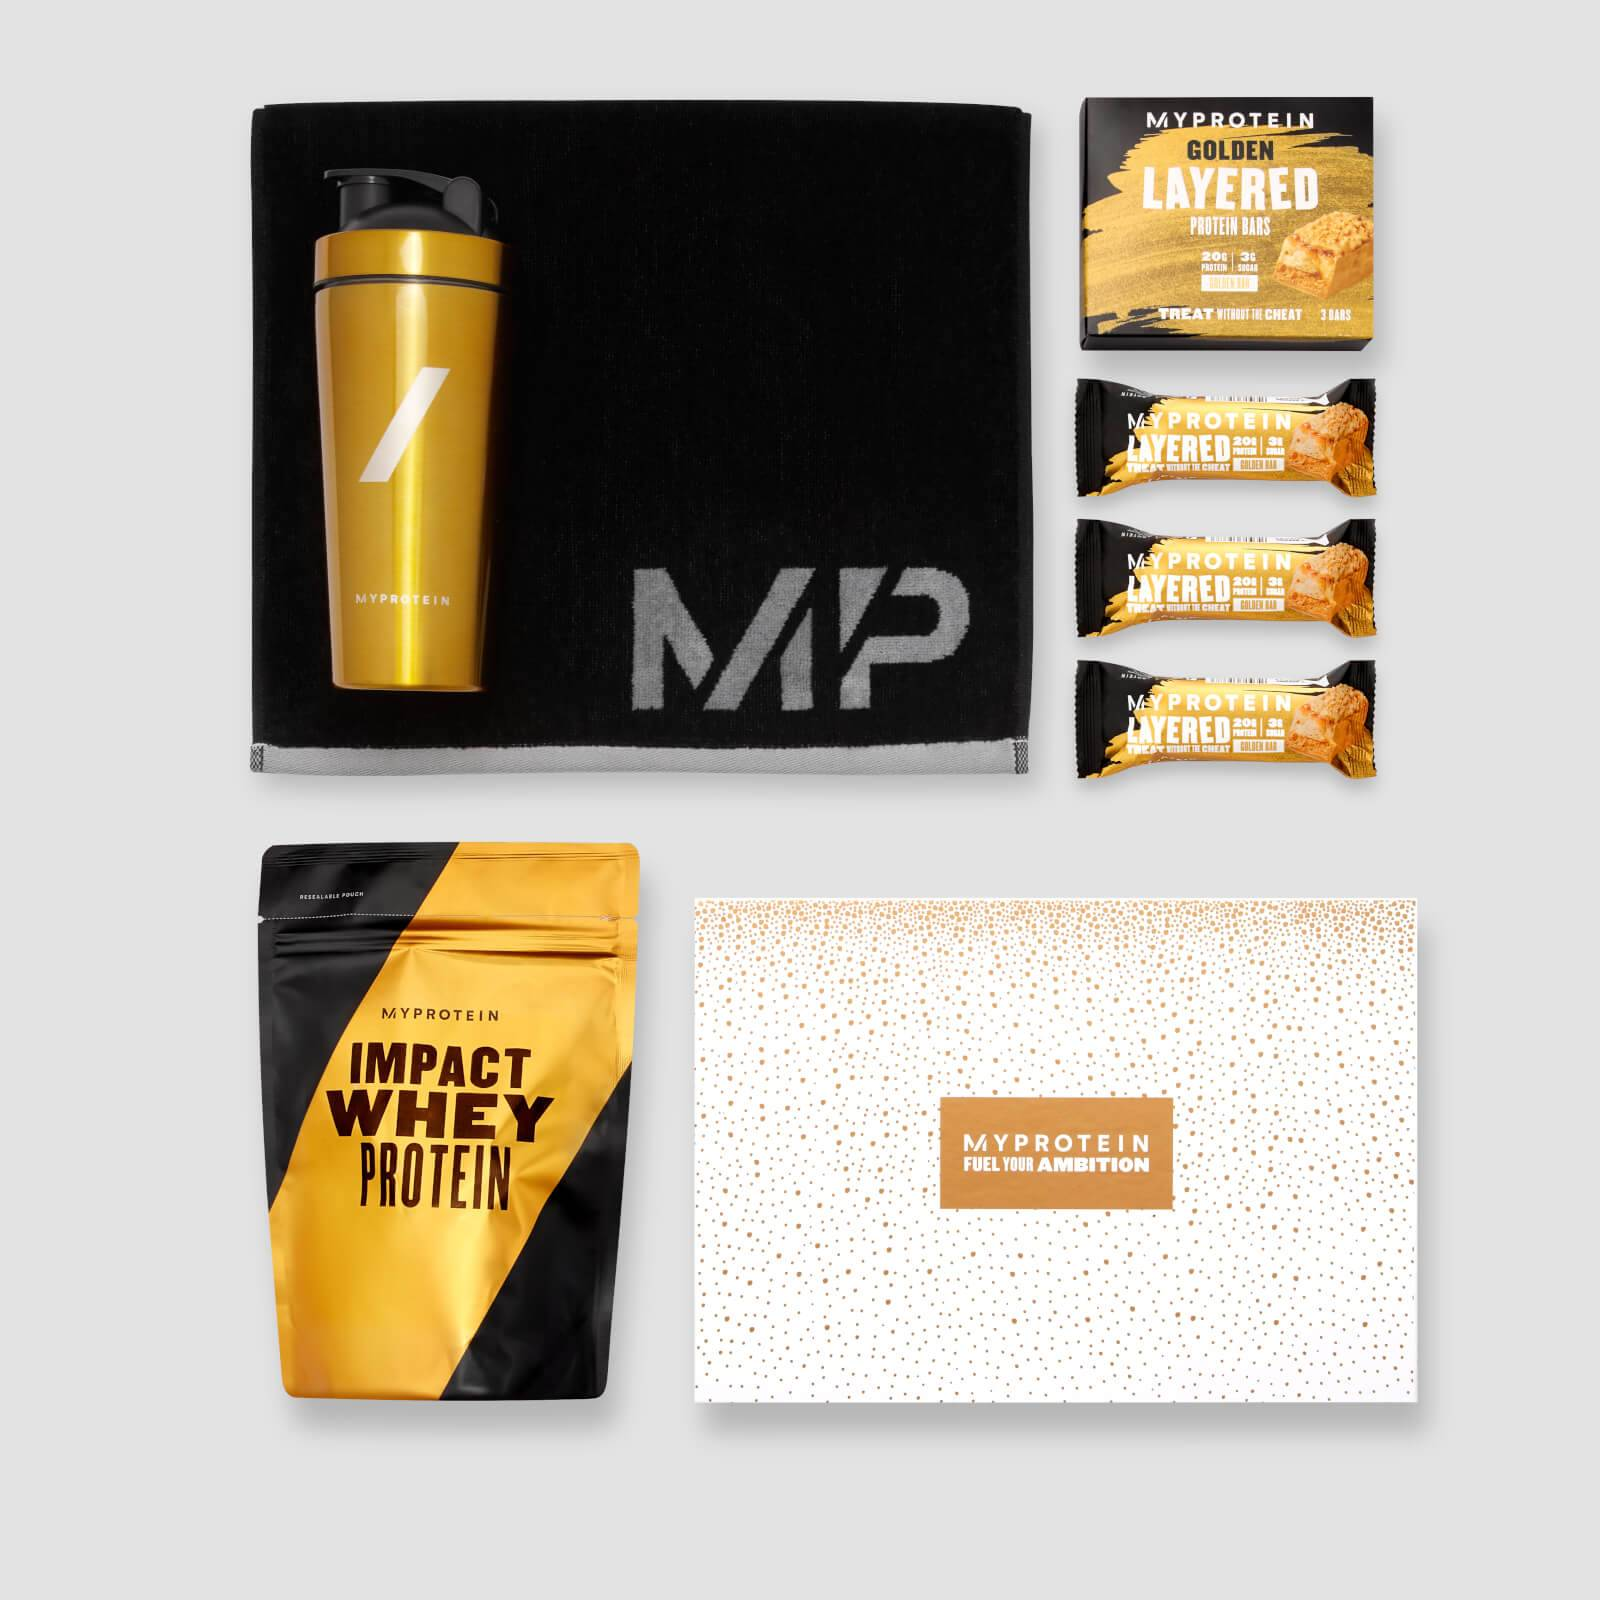 Myprotein Christmas Golden Box Edizione Limitata